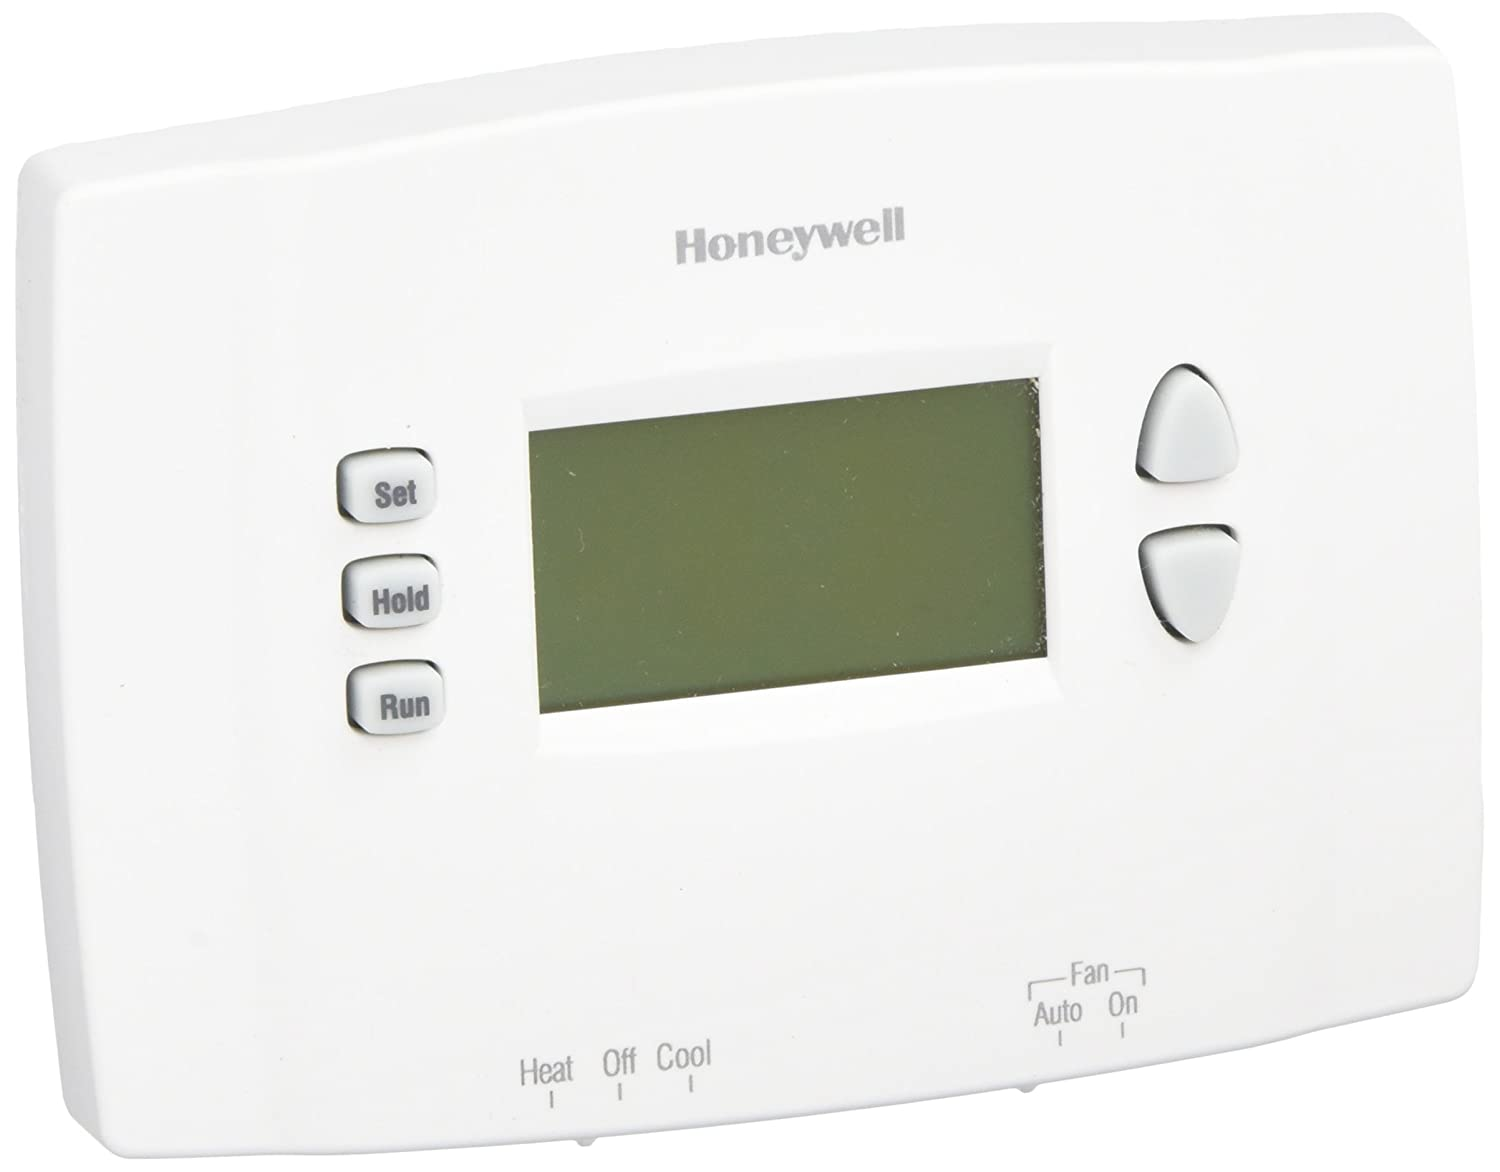 Honeywell 7-Day Programmable Thermostat (White)